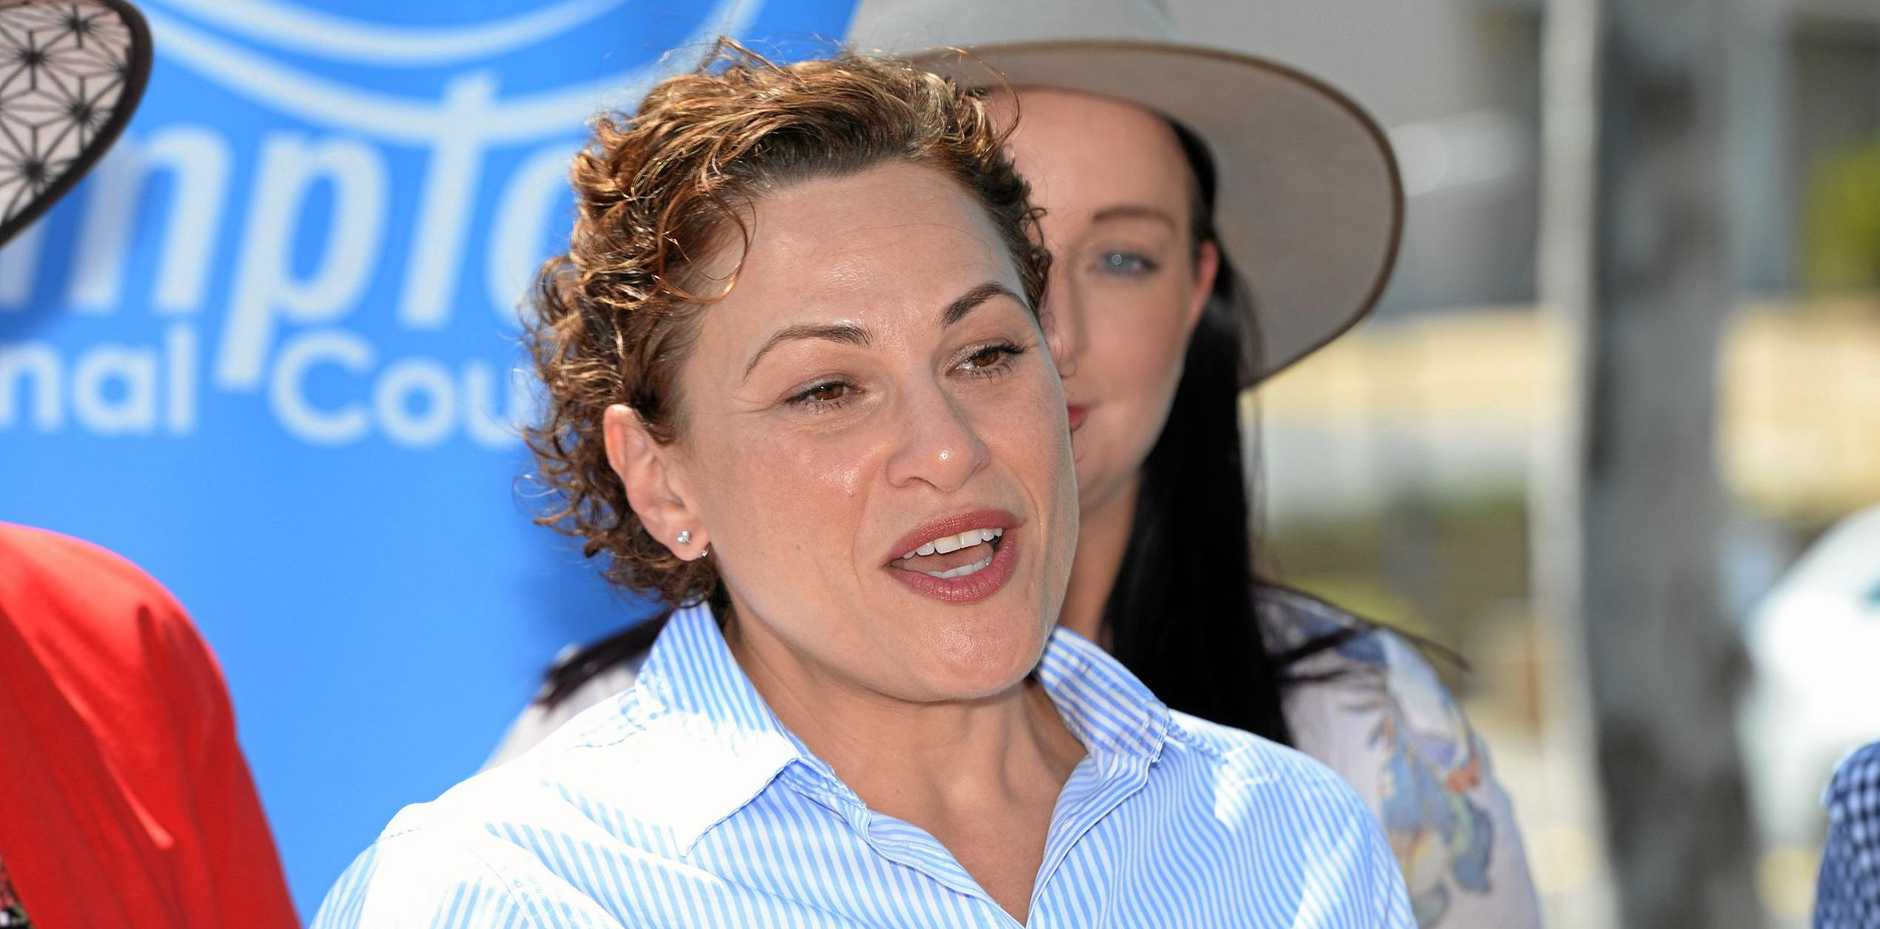 Deputy Premier Jackie Trad answered Daily Mercury reader-submitted questions while in Mackay.